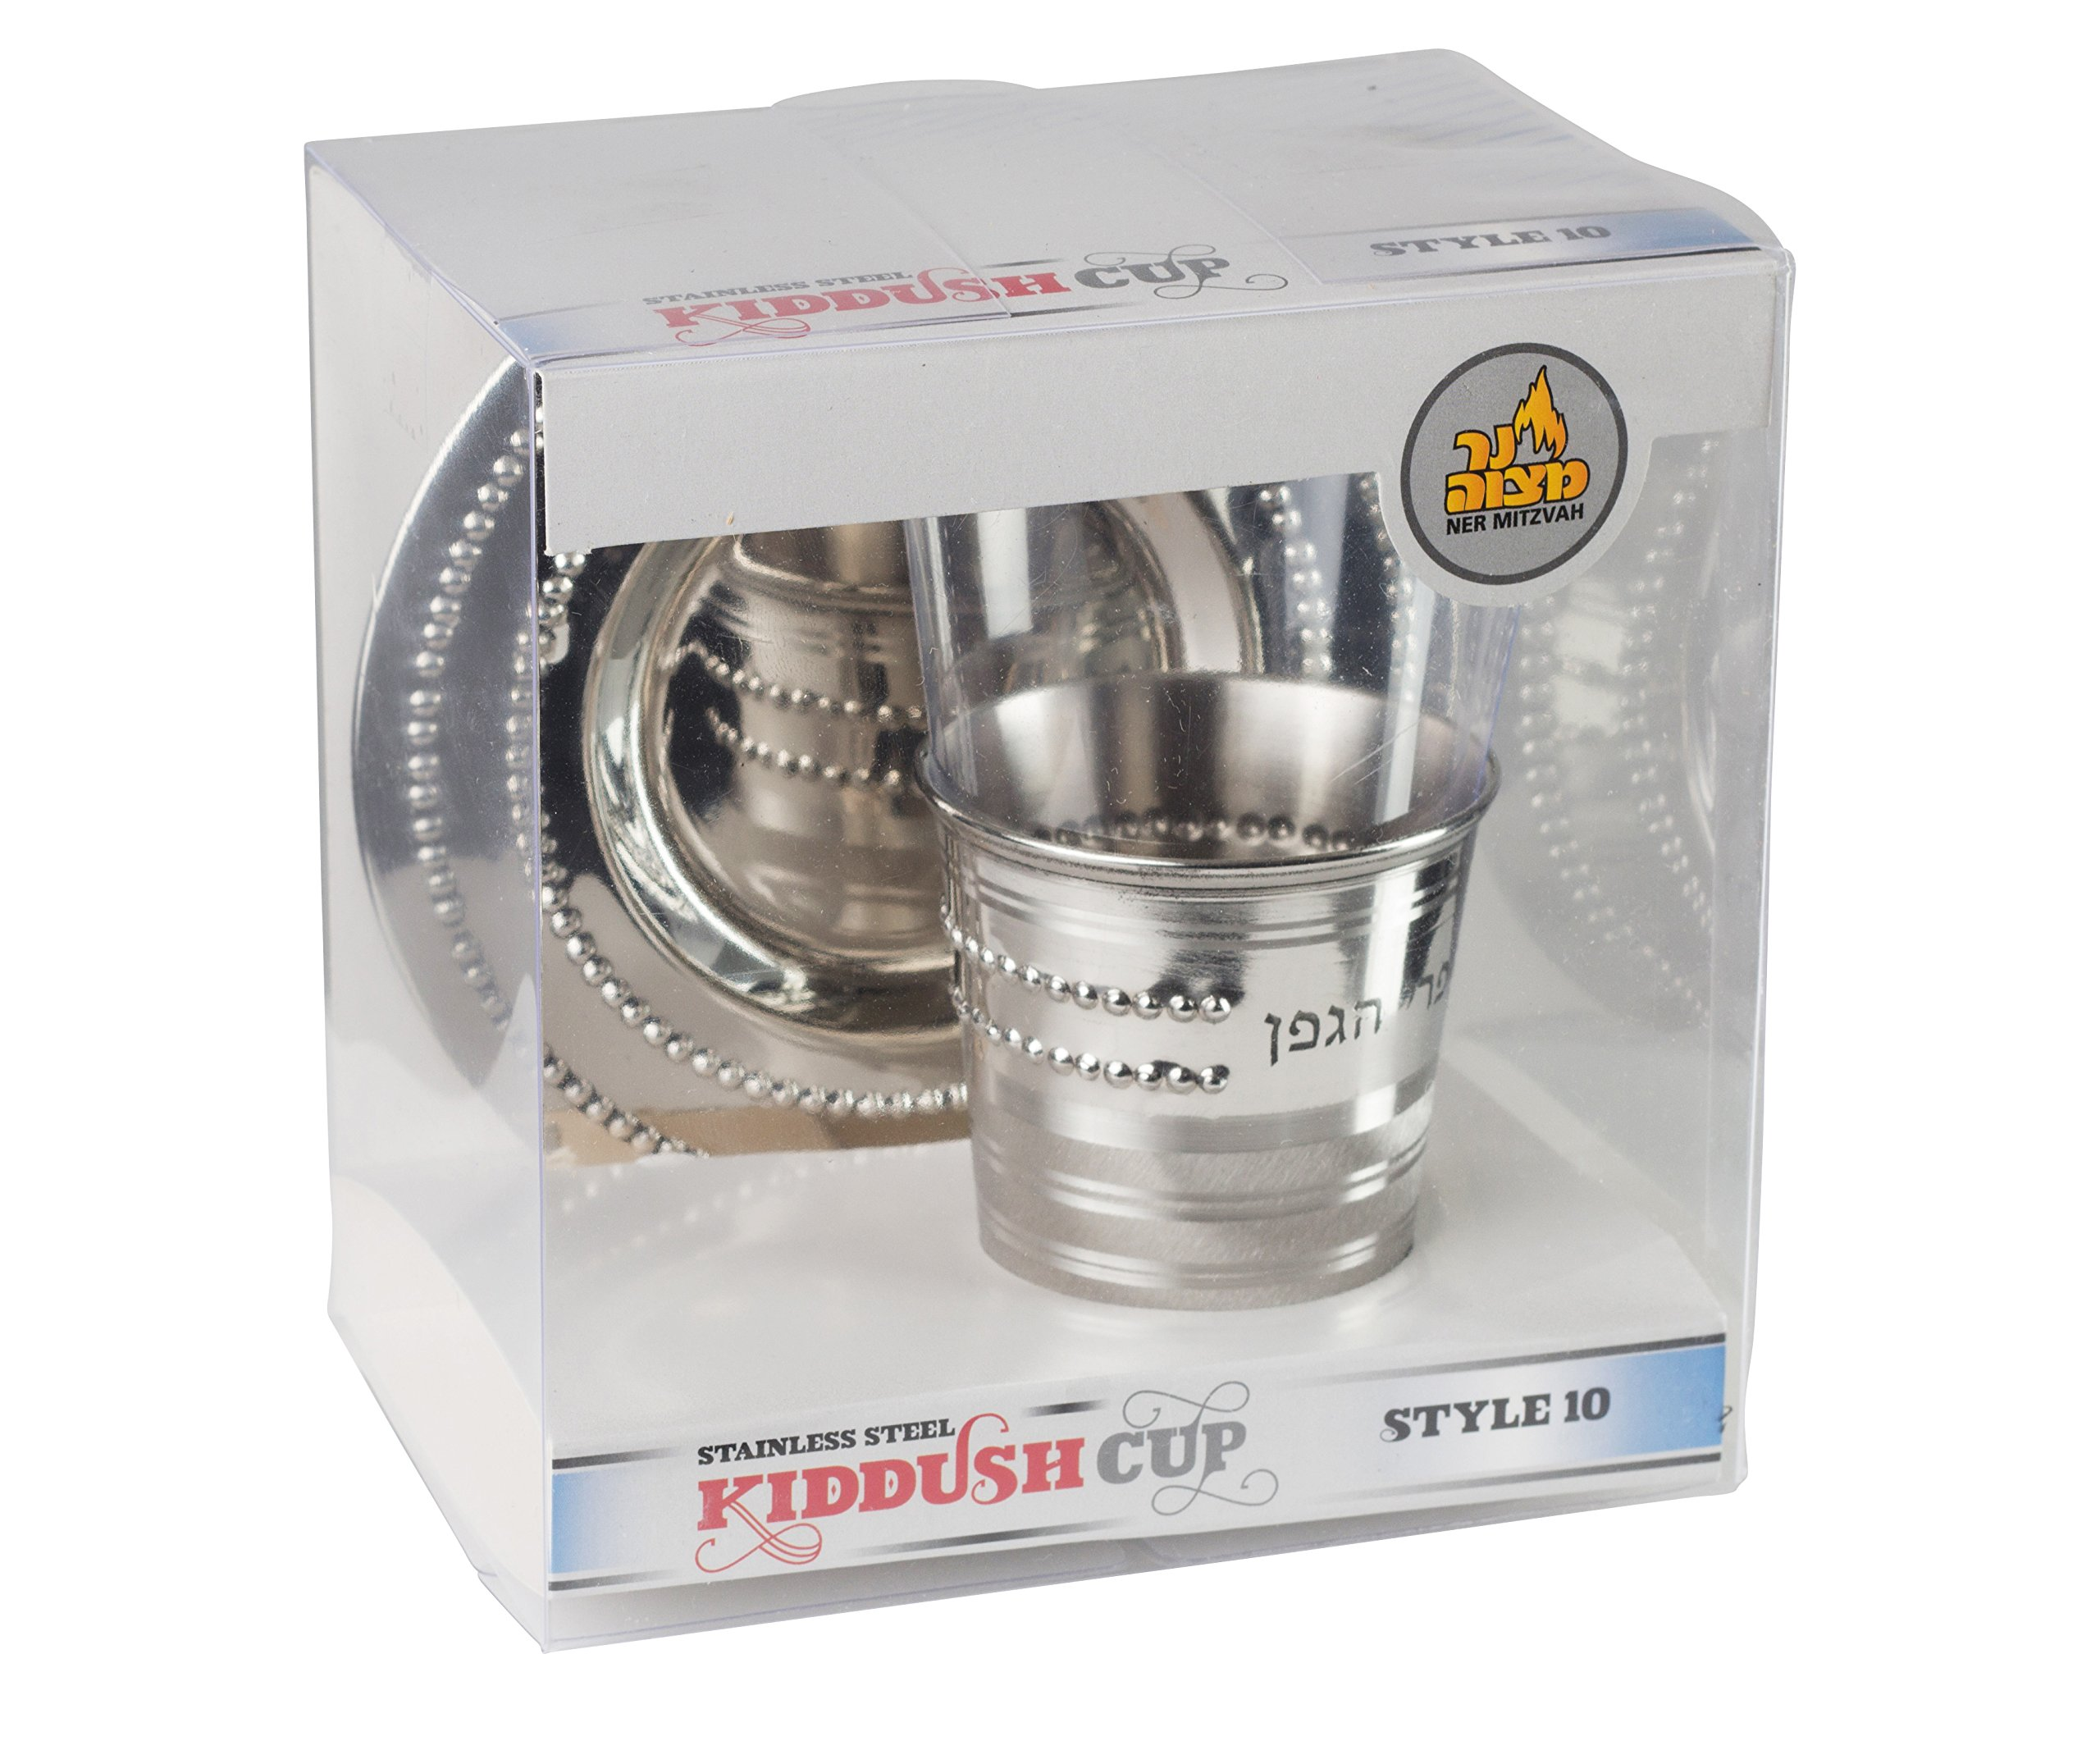 Stainless Steel - Non Tarnish - Kiddush Cup and Tray - For Shabbat and Havdalah - Judaica Shabbos and Holiday Gift - By Ner Mitzvah by Ner Mitzvah (Image #3)